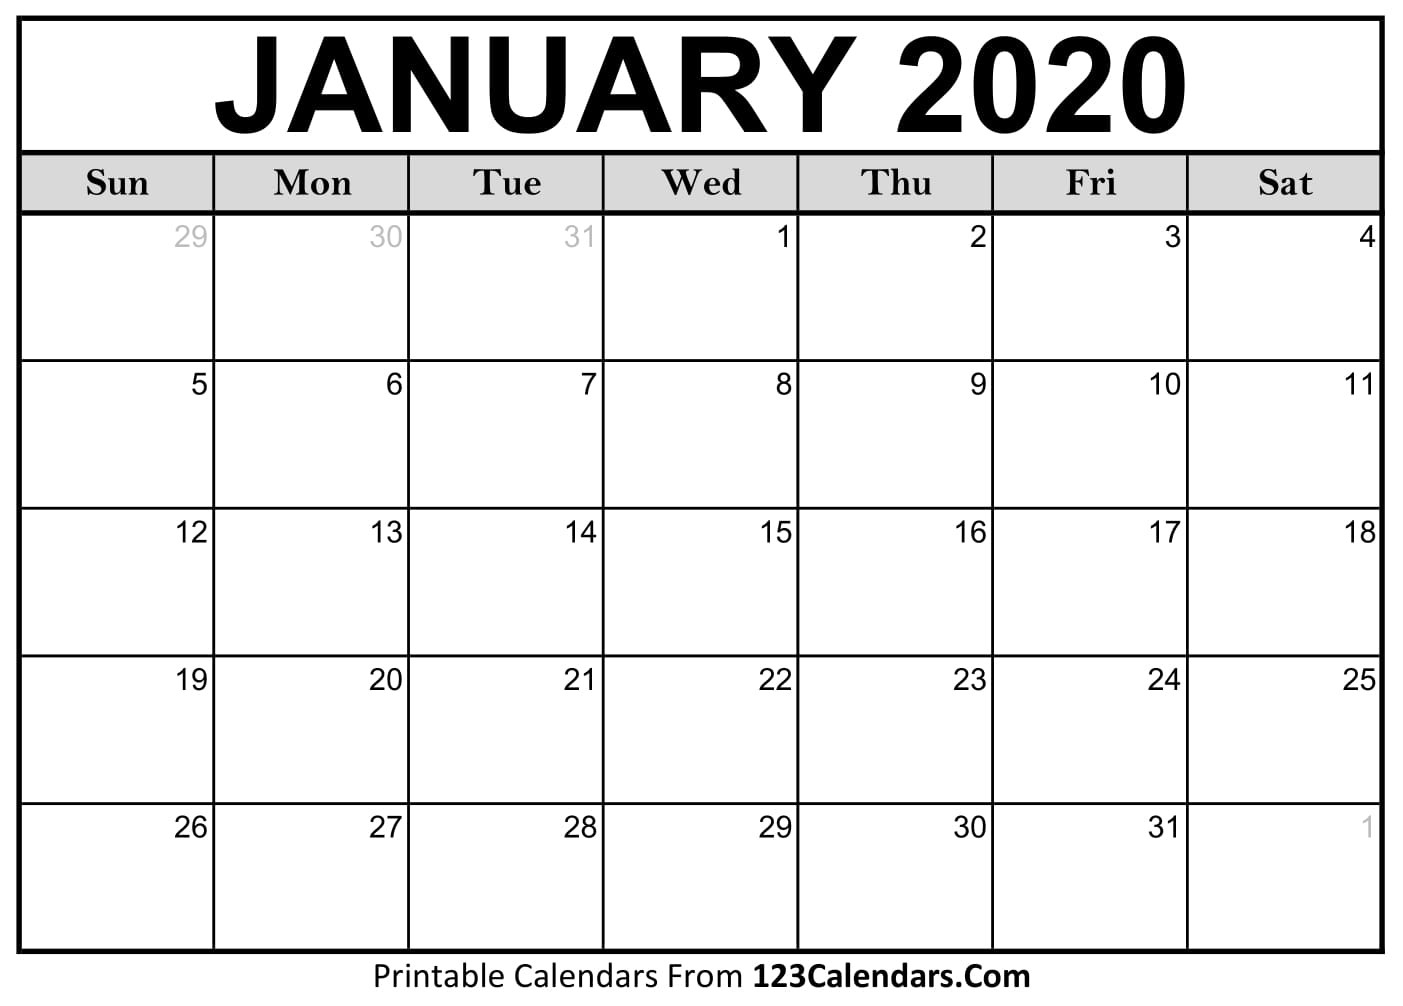 January 2020 Printable Calendar | 123Calendars-National Day Calendar January 2020